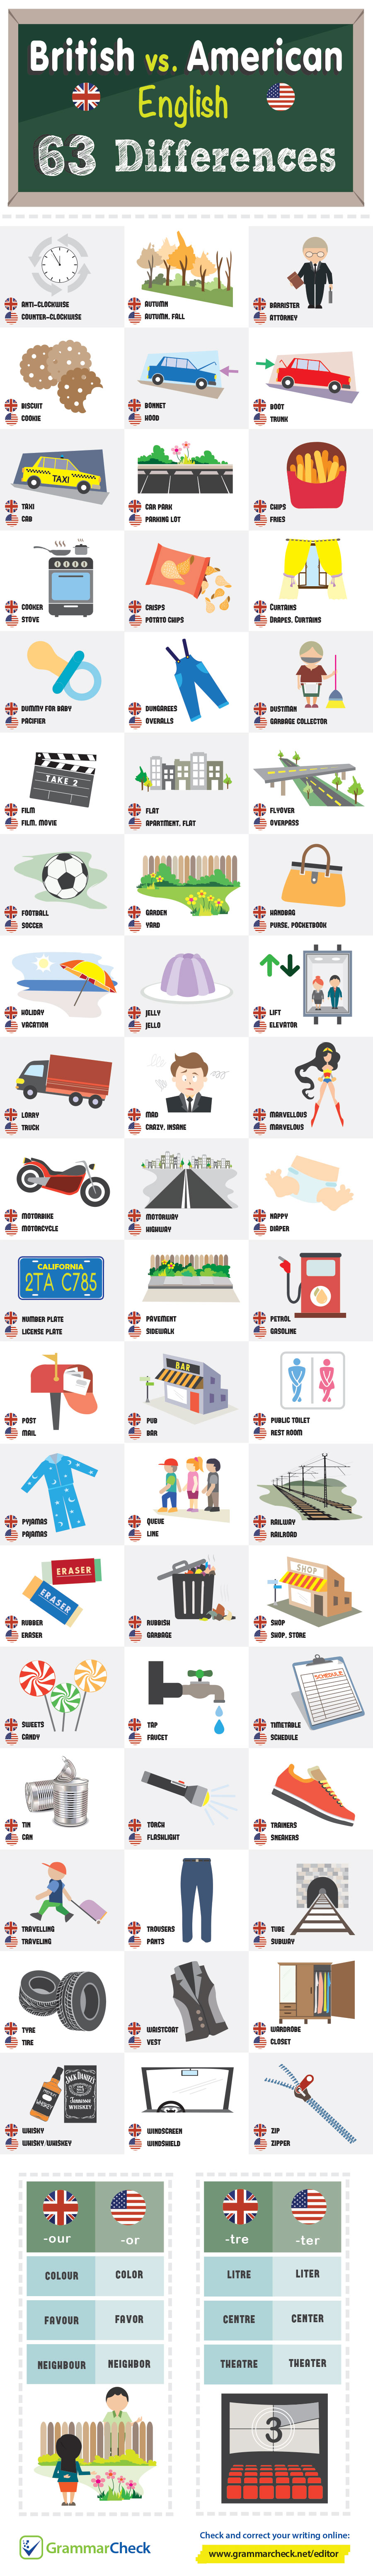 63 Differences Between British English and American English - Infographic